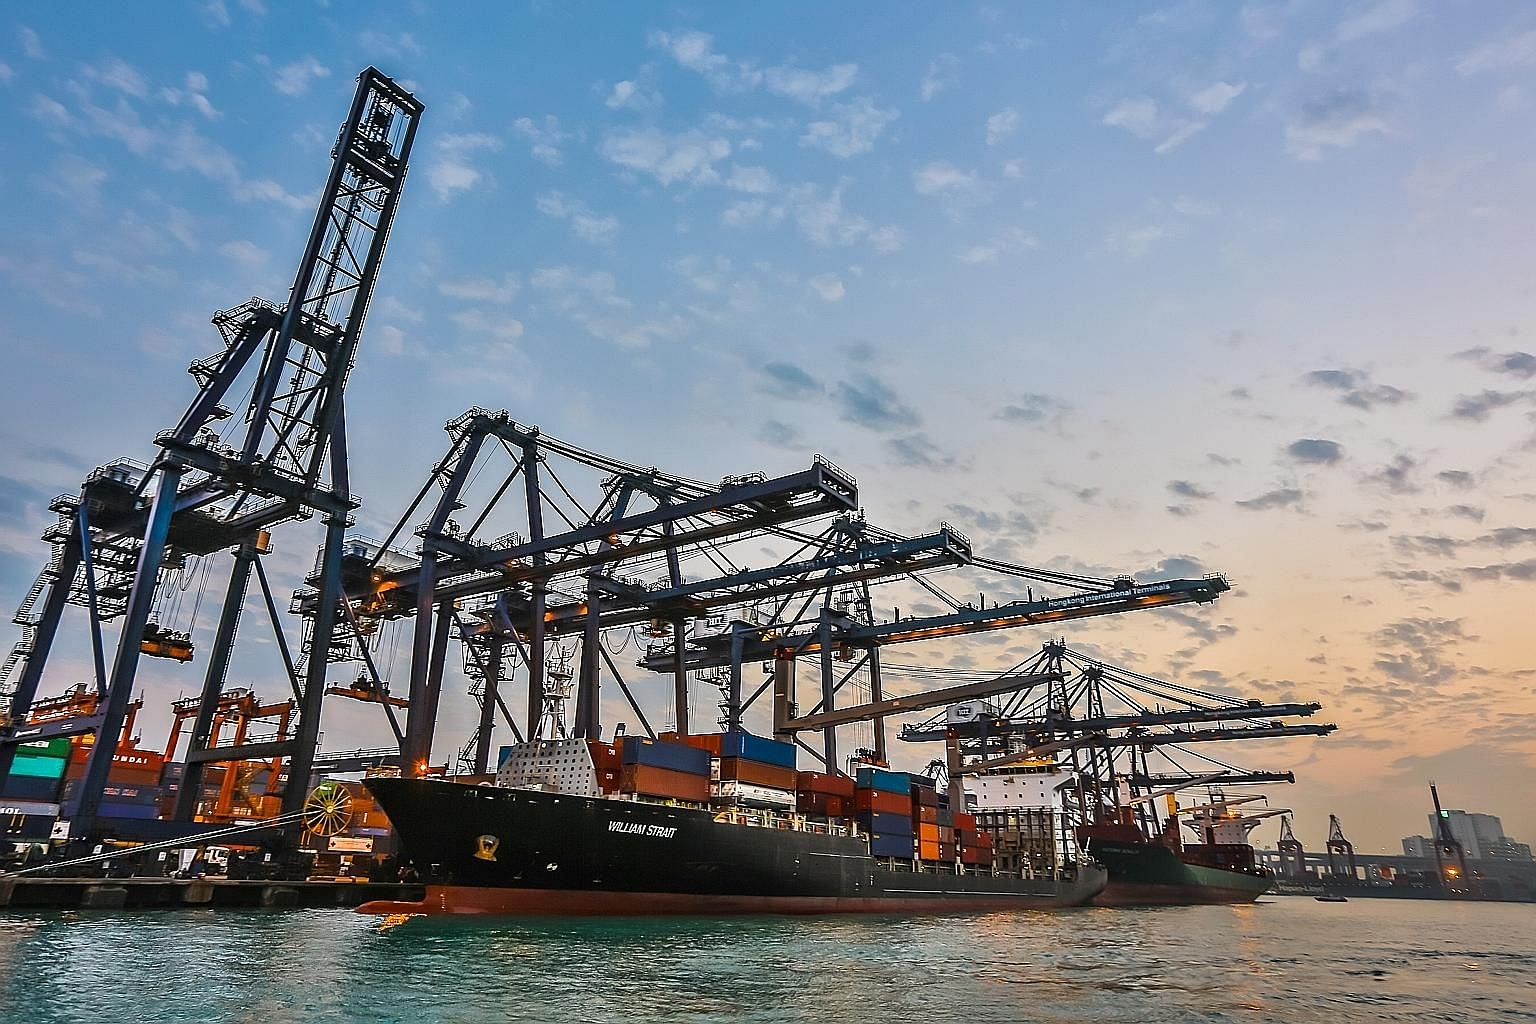 HPH trust expects to see neutral to modest growth in throughput at its Hong Kong (above) and South China container terminals as the impact of consolidation in the global shipping industry continues to play out.